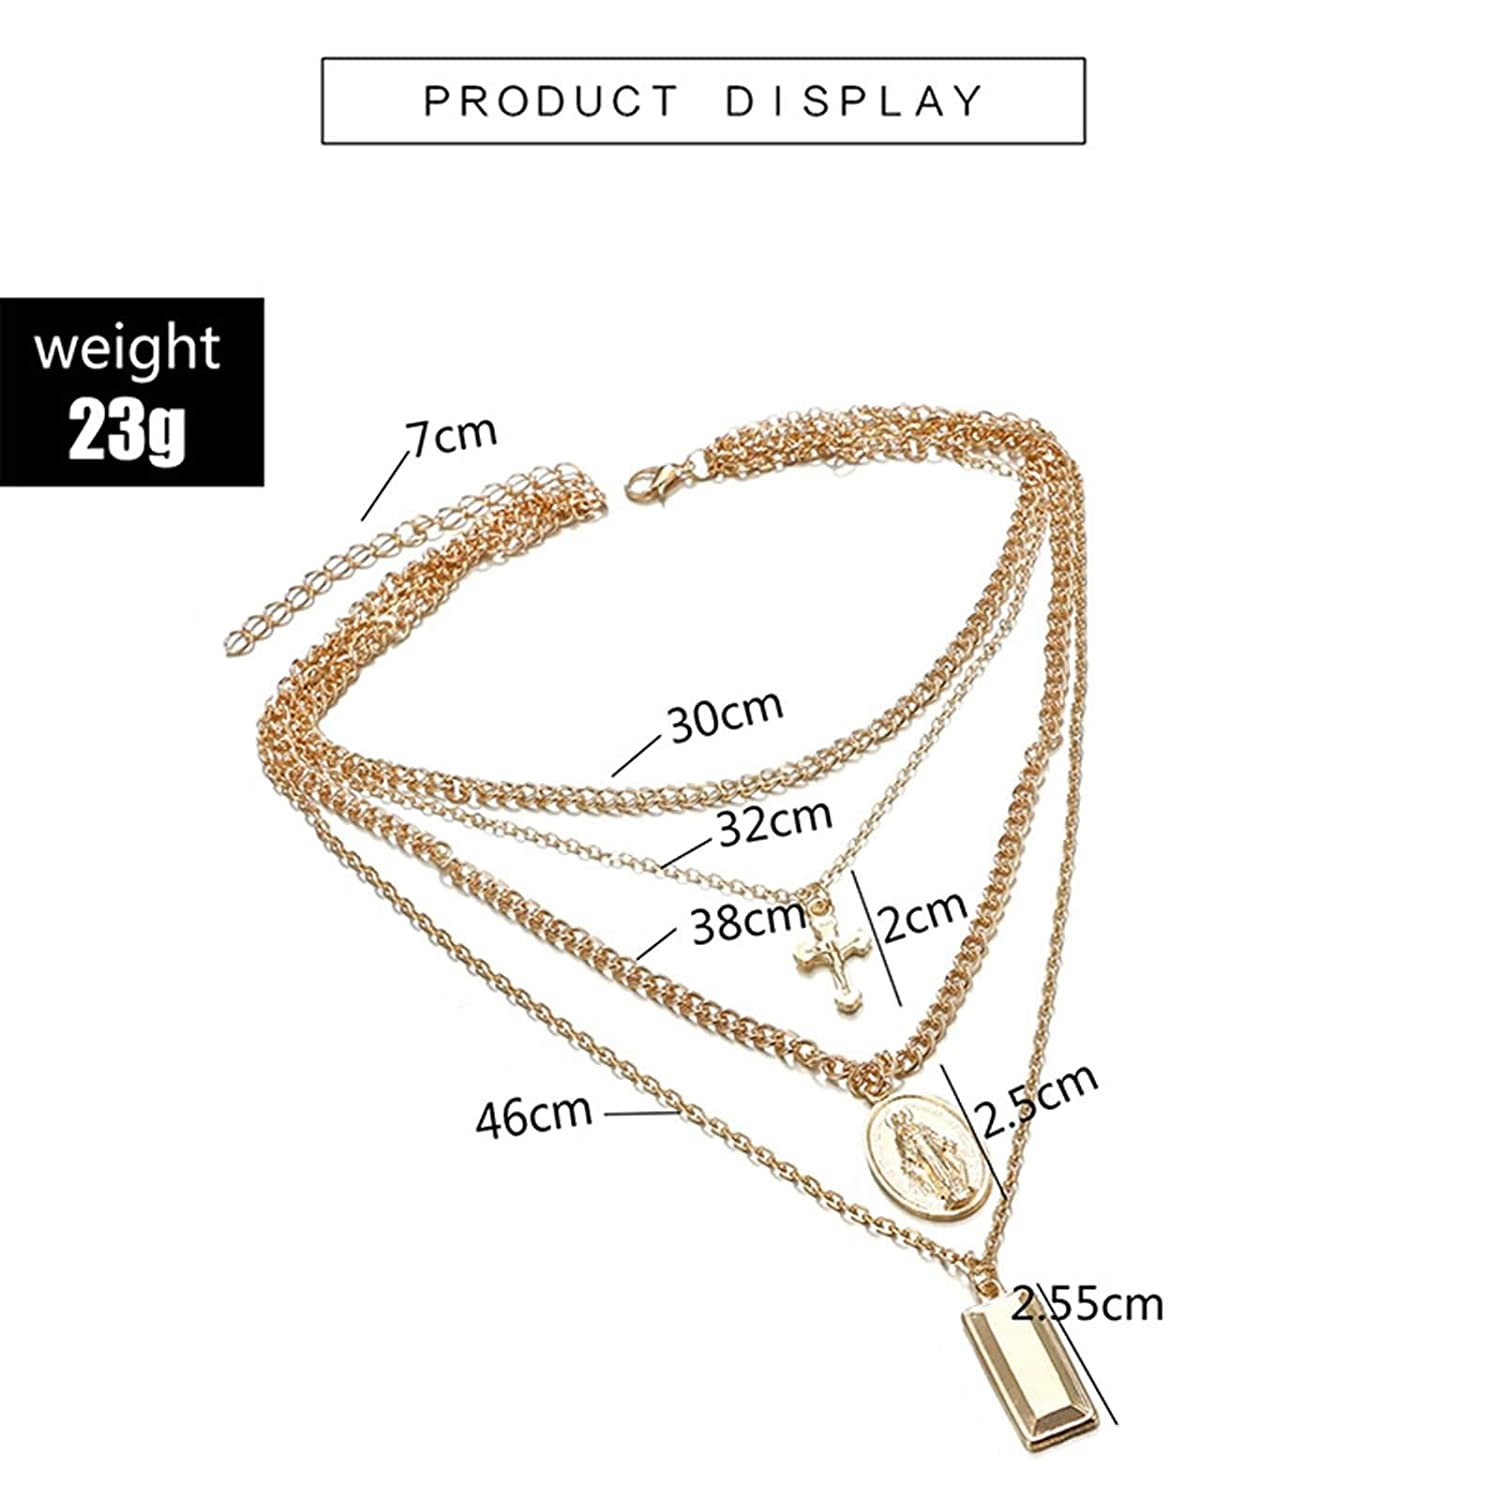 AMDXD Jewelry Beach Necklace Women Gold Virgin Mary Cross Shape 4 Layer Necklace Retro Necklace for Women